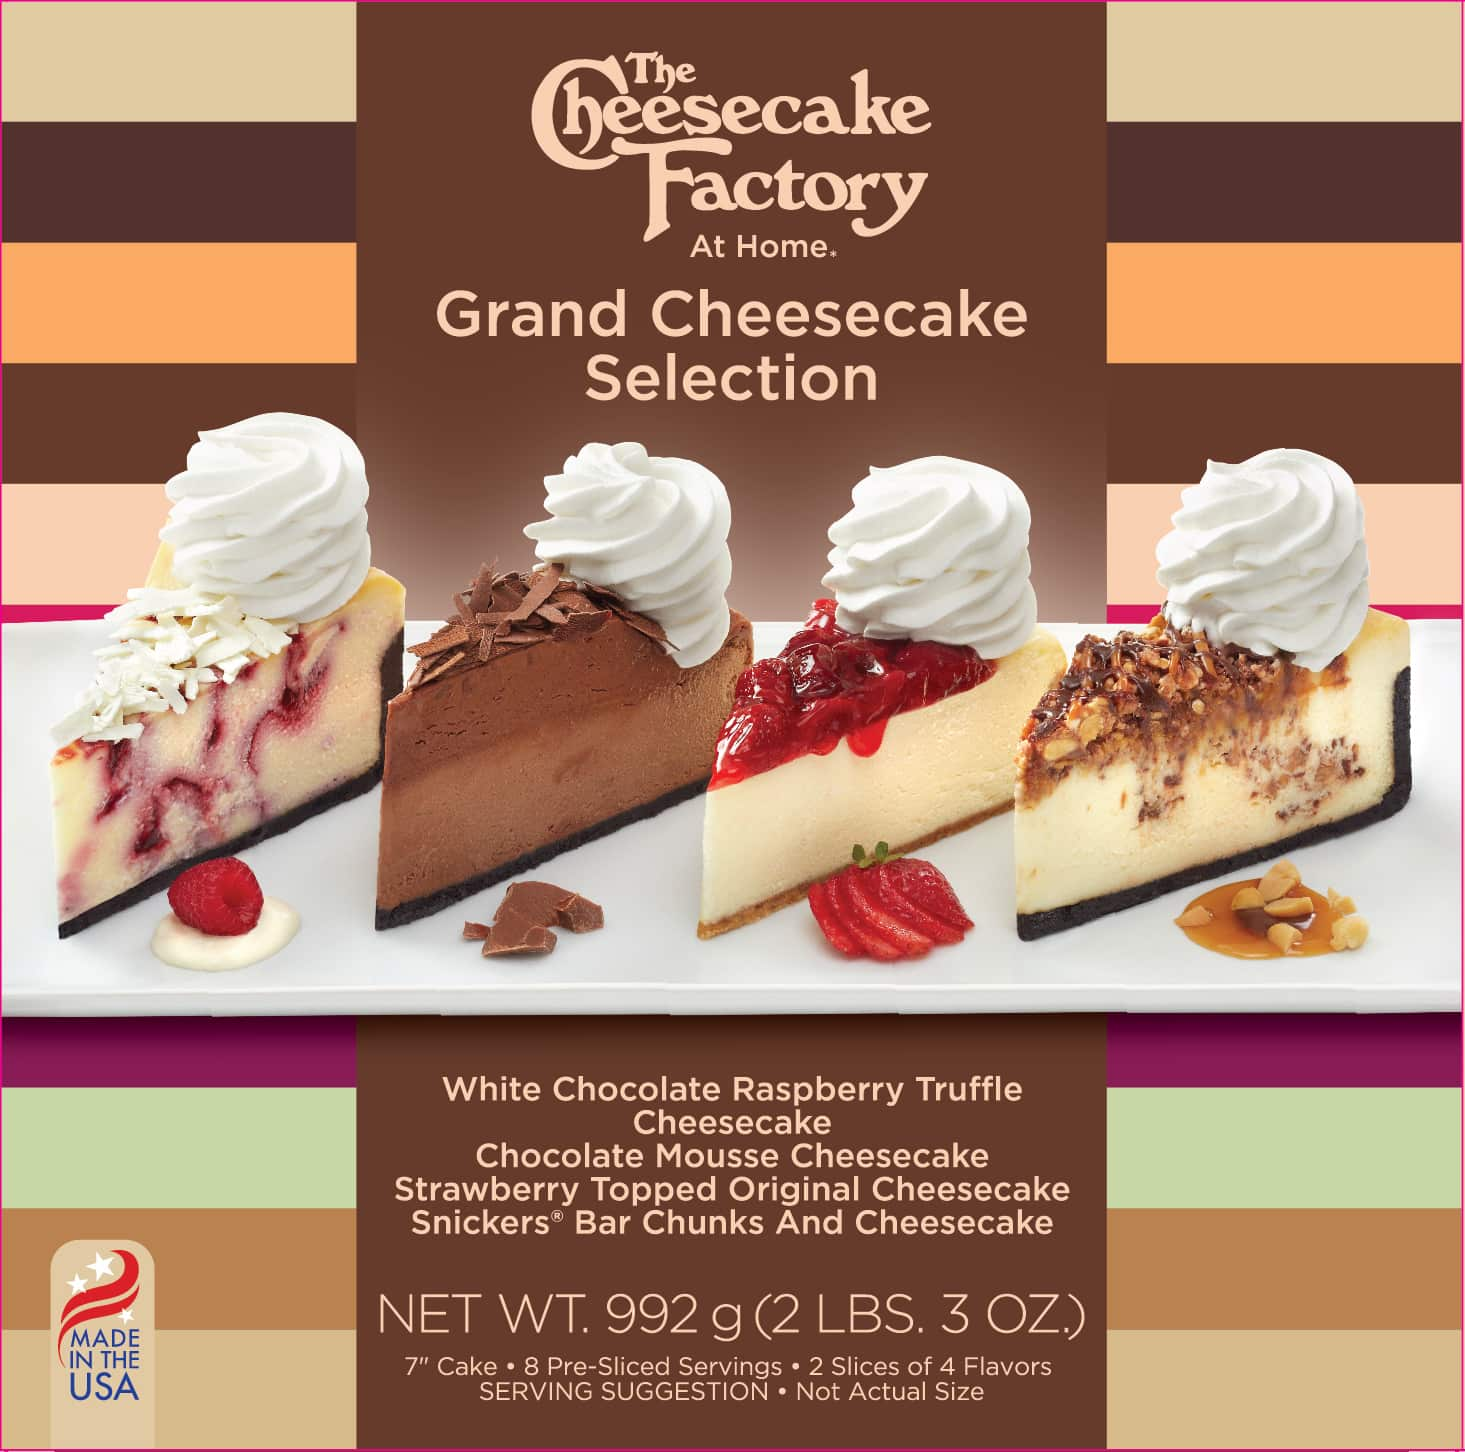 7 inch Grand Selection of The Cheesecake Factory Cheesecakes; Chocolate Raspberry Truffle® Cheesecake, Chocolate Mousse Cheesecake, Snickers® Bar Chunks and Cheesecake, and Strawberry Topped Cheessecake